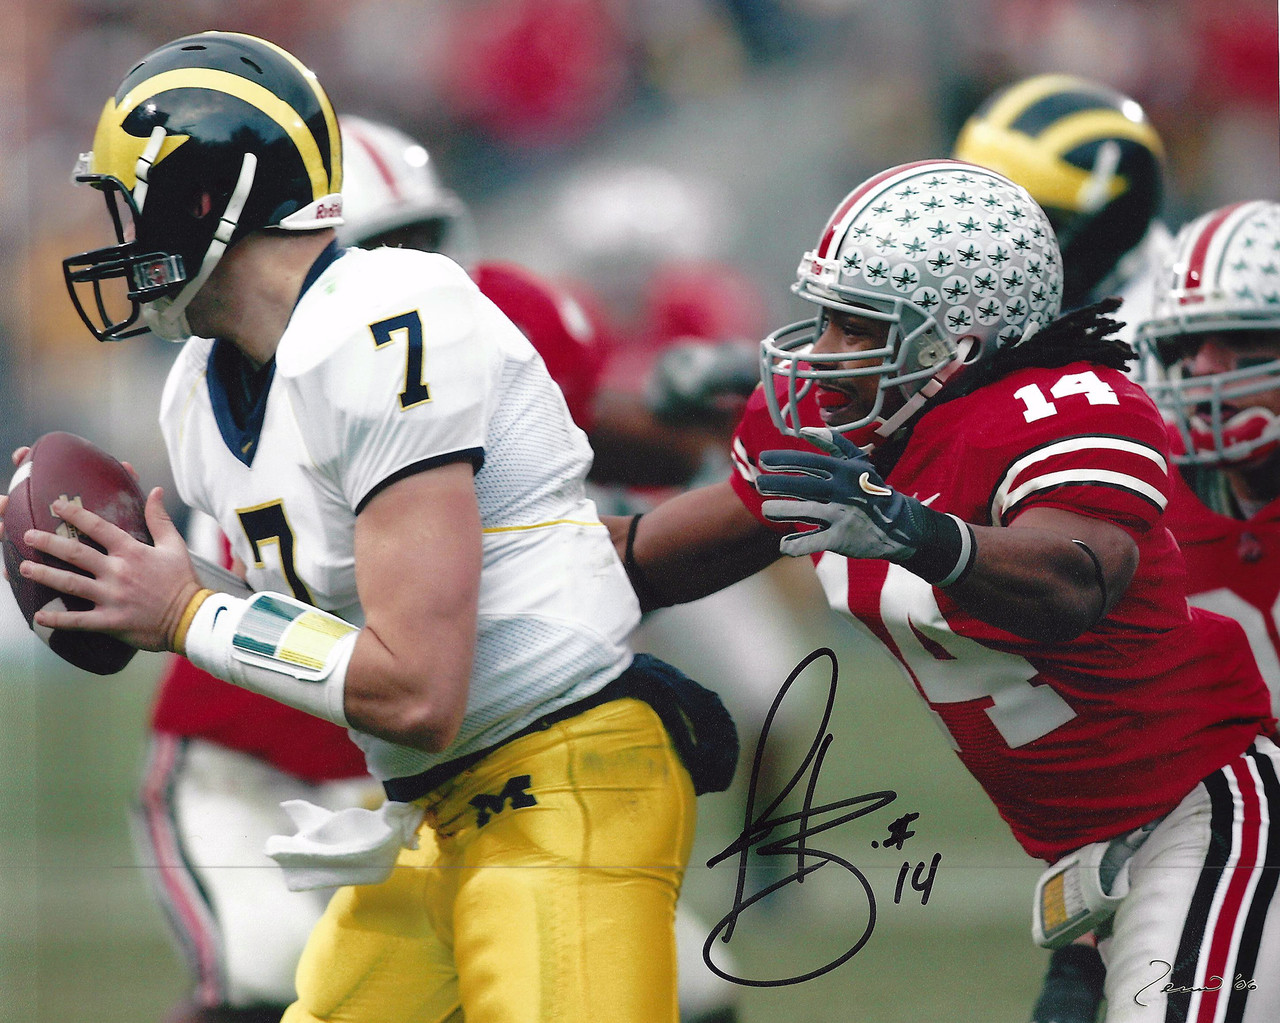 Antonio Smith OSU 8-3 8x10 Autographed Photo - Certified Authentic